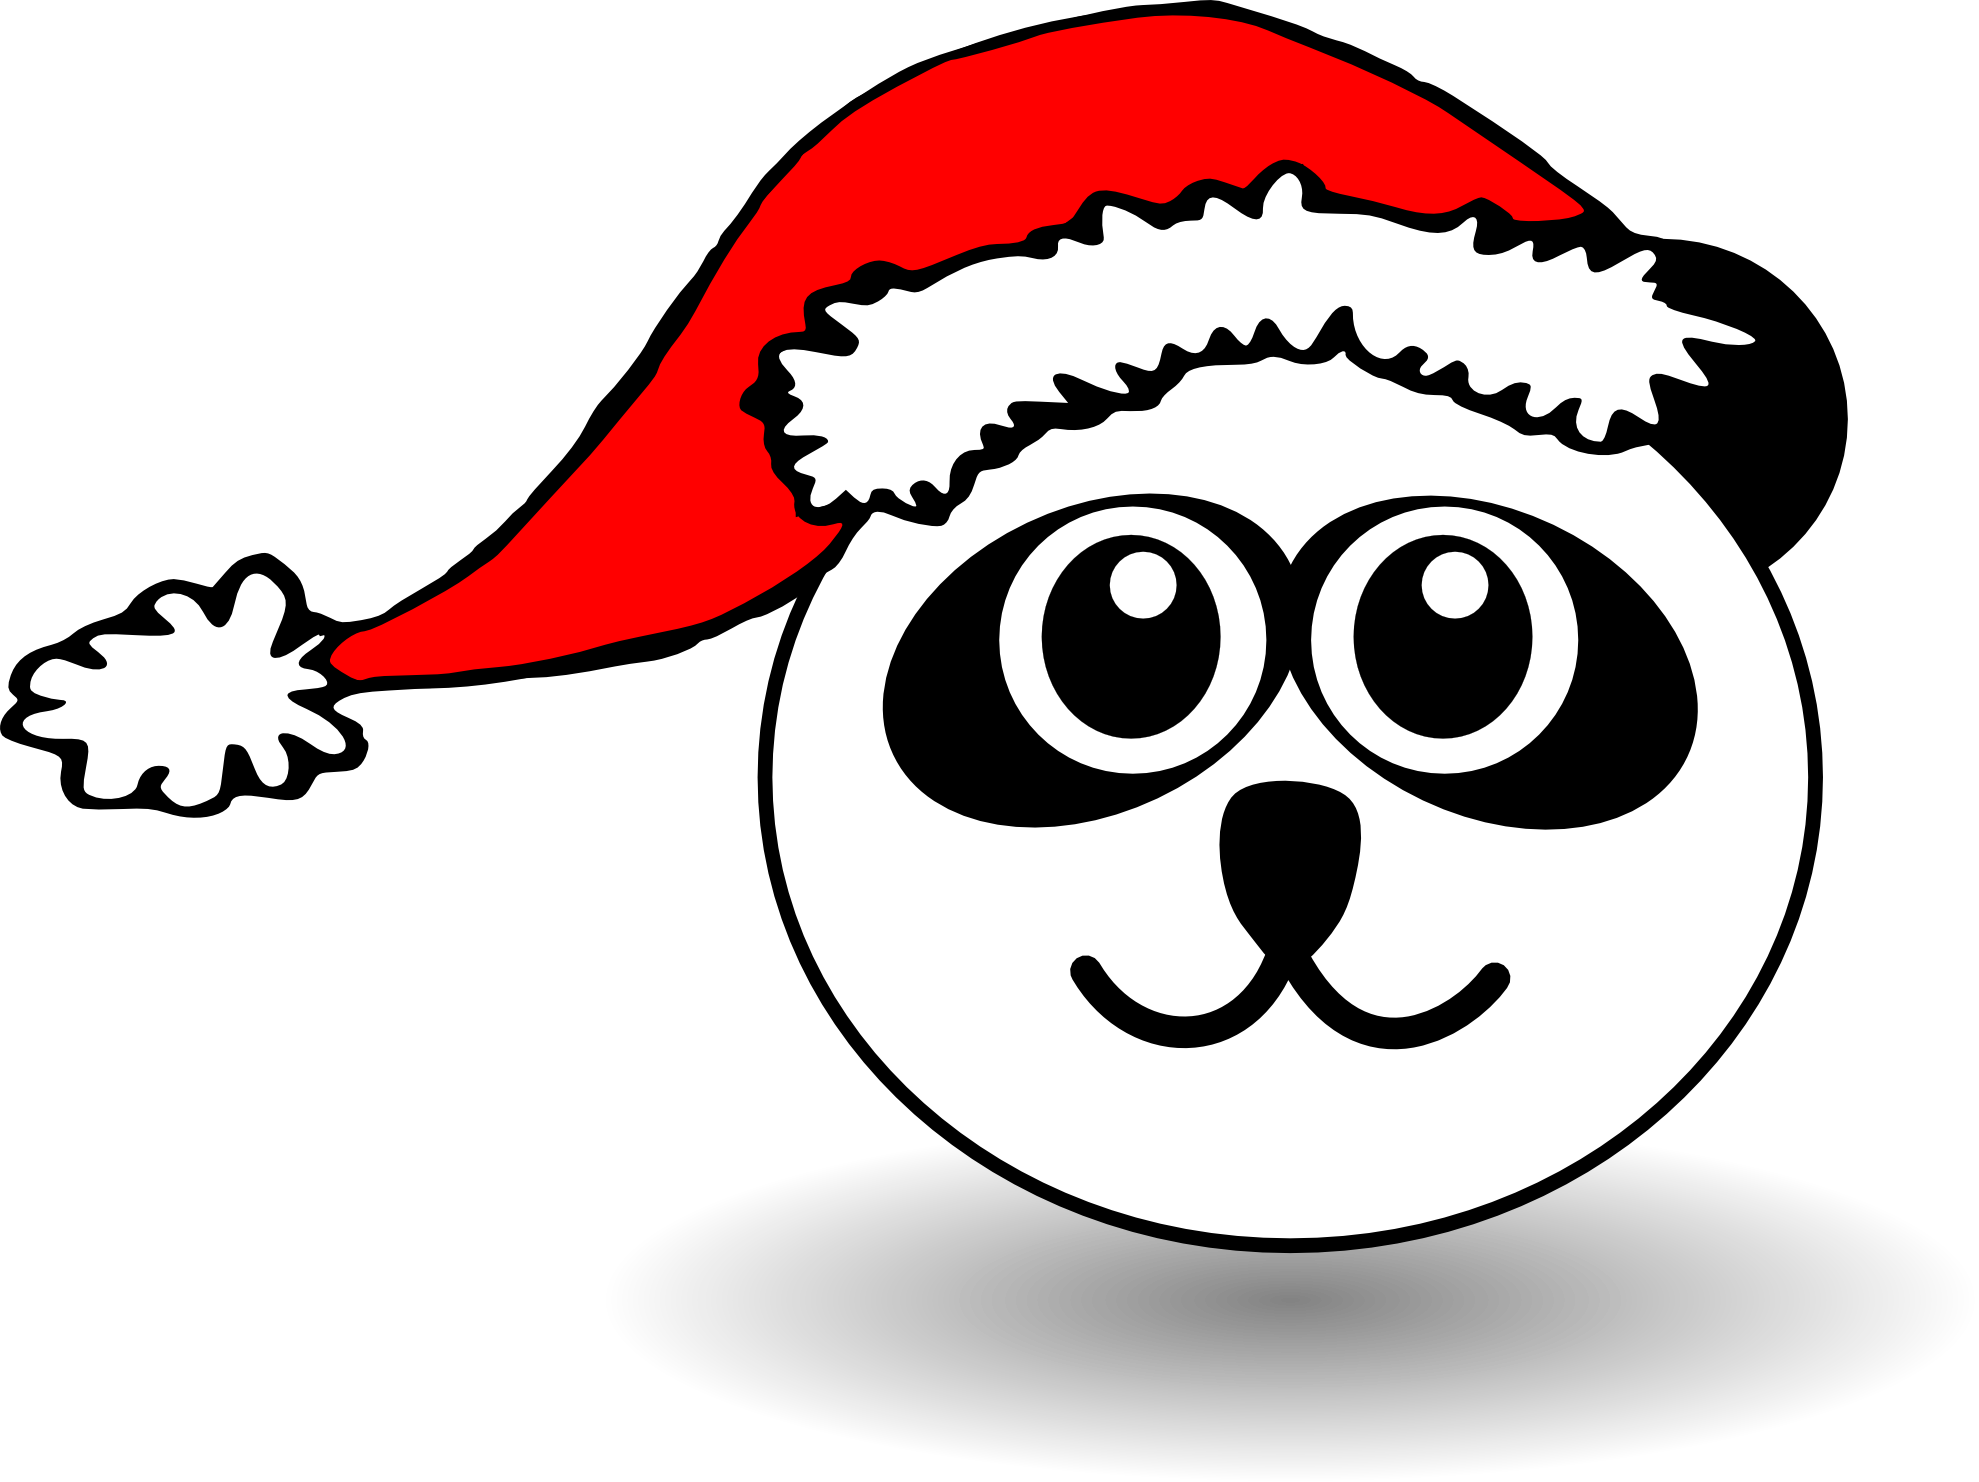 Turkey face with hat clipart graphic freeuse download Cartoon Santa Hat (53+) graphic freeuse download